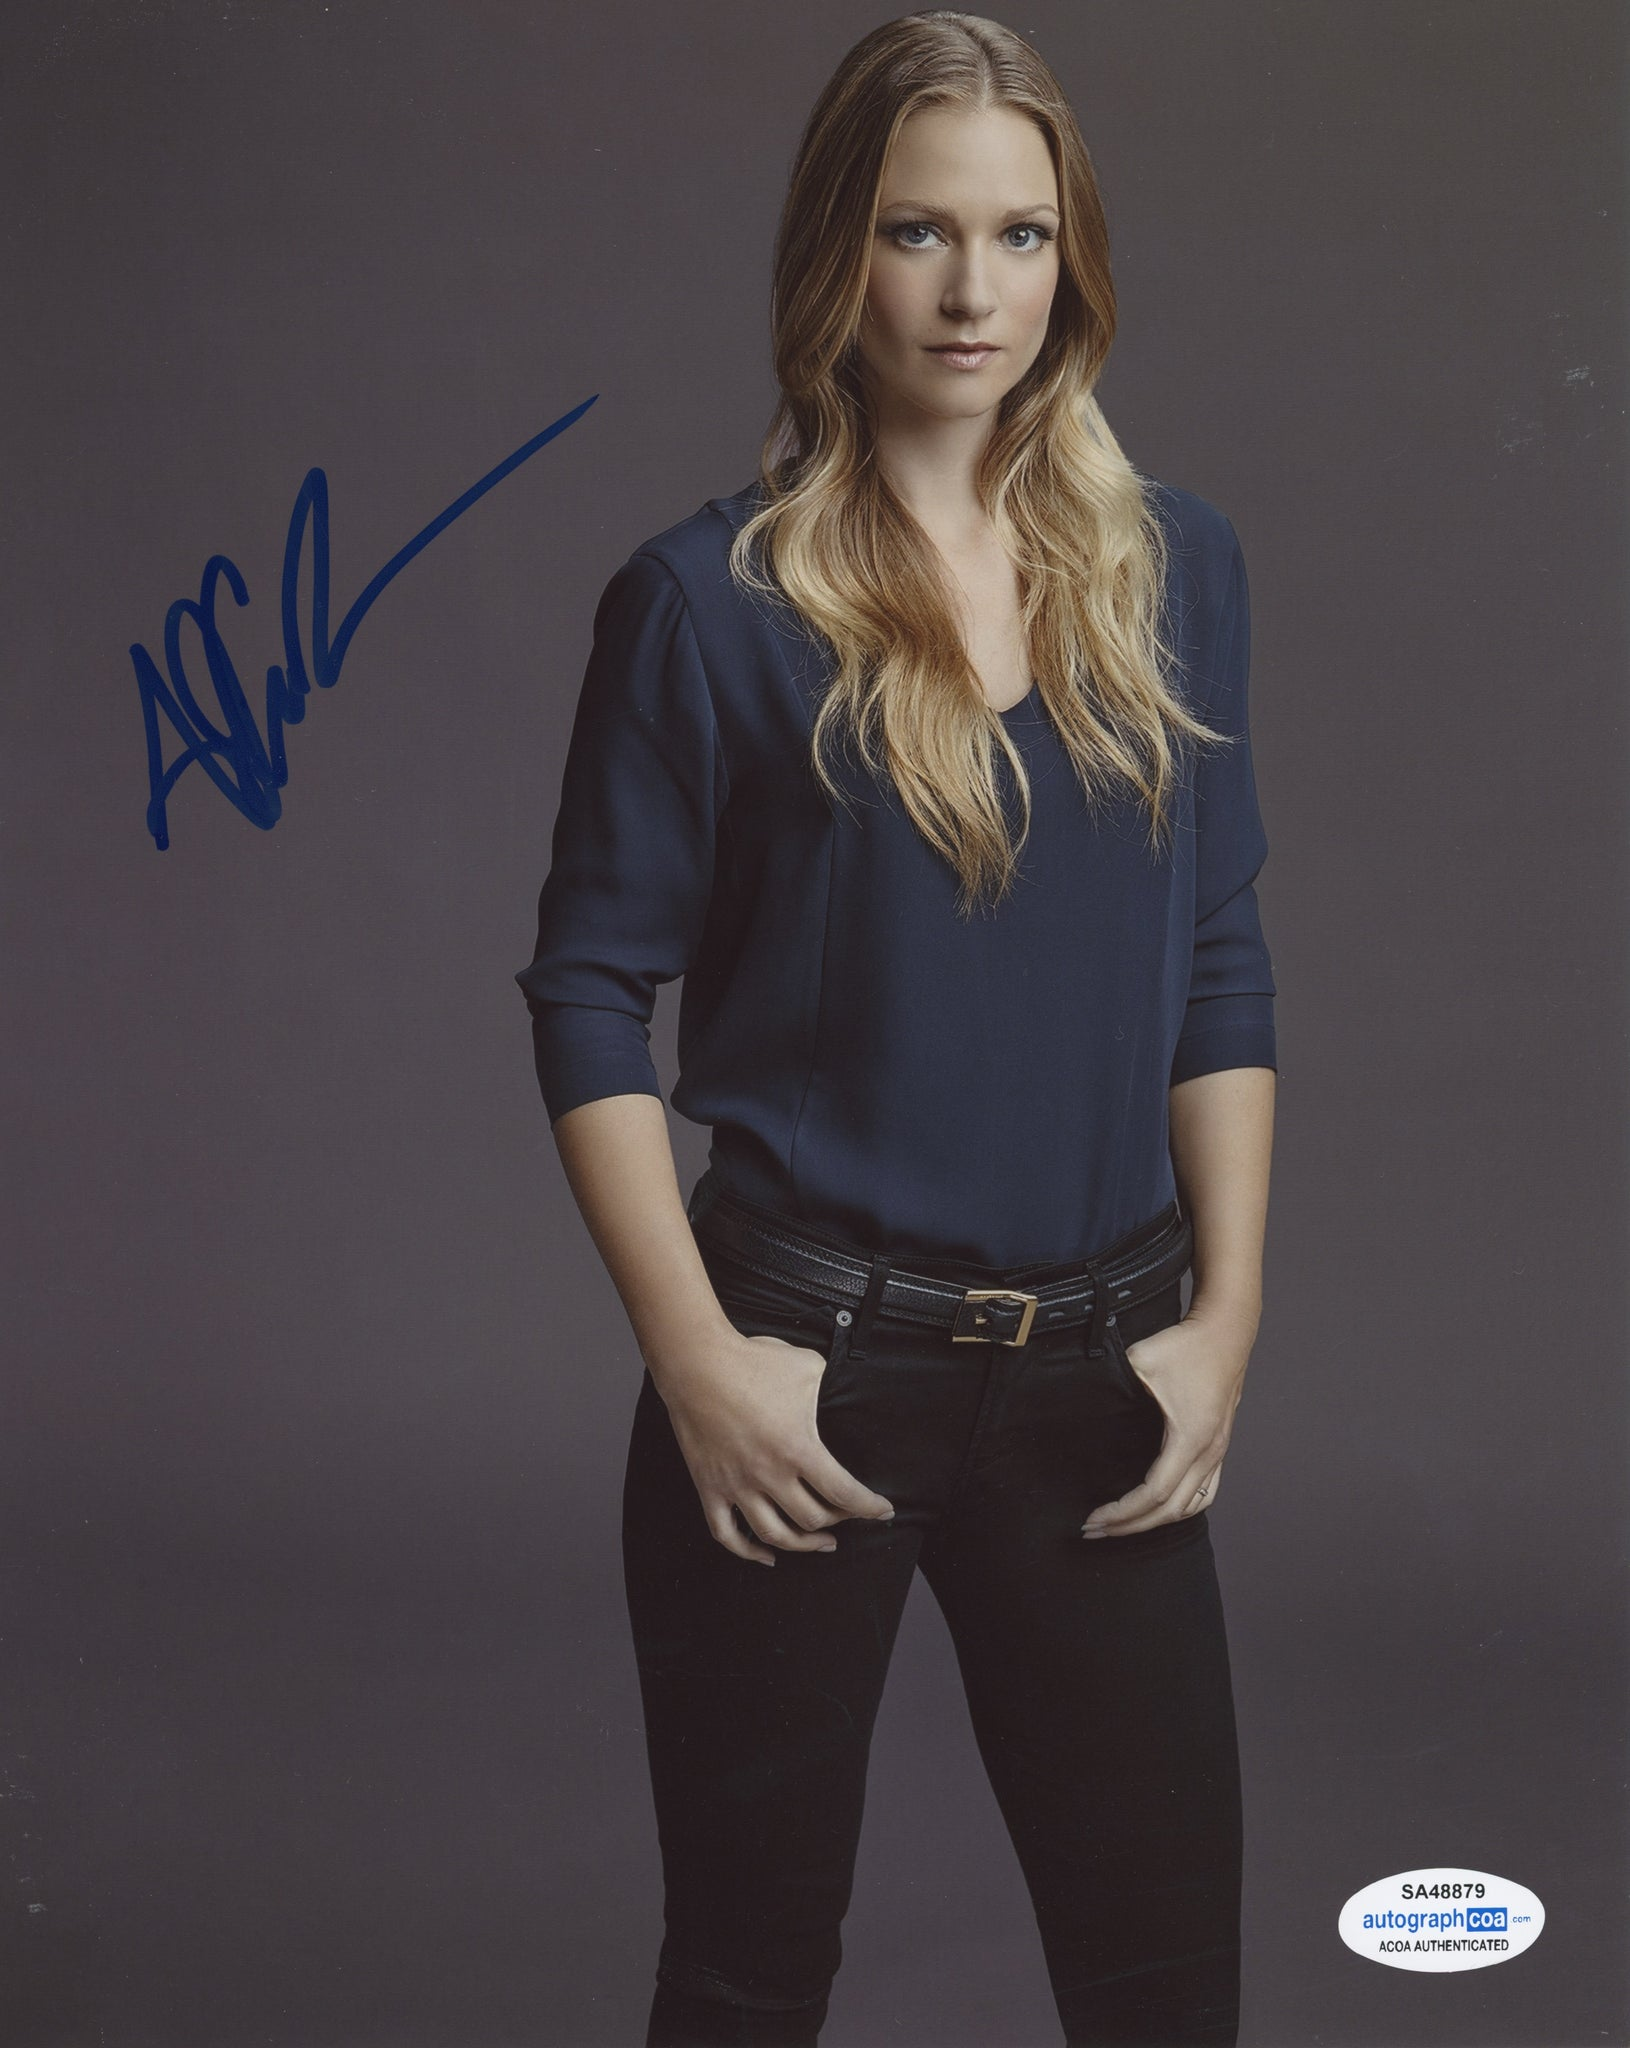 AJ A.J. Cook Criminal Minds Signed Autograph 8x10 Photo ACOA